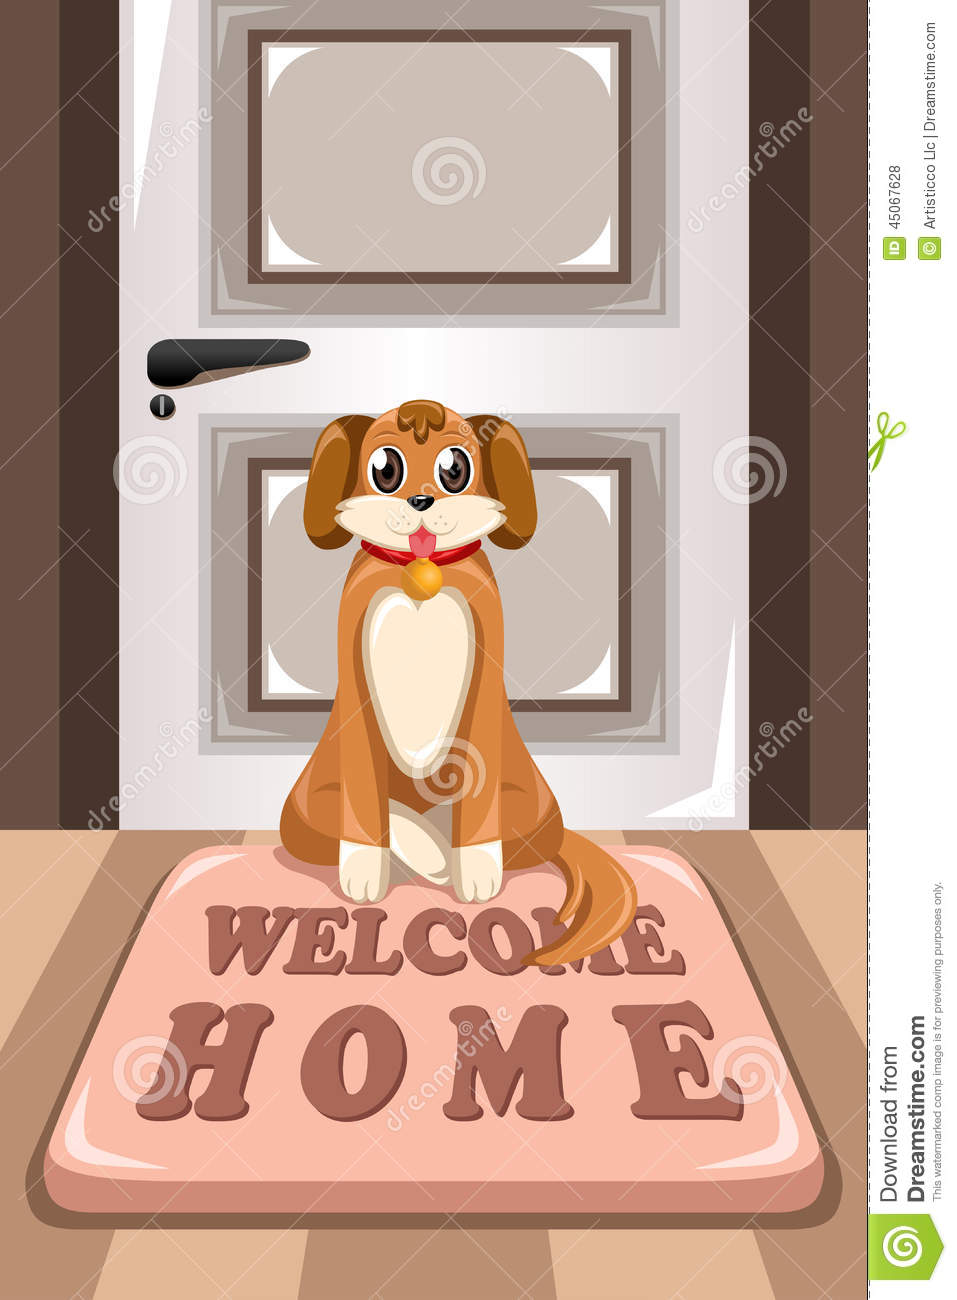 Cute Dog Sitting On A Mat Stock Vector Image 45067628